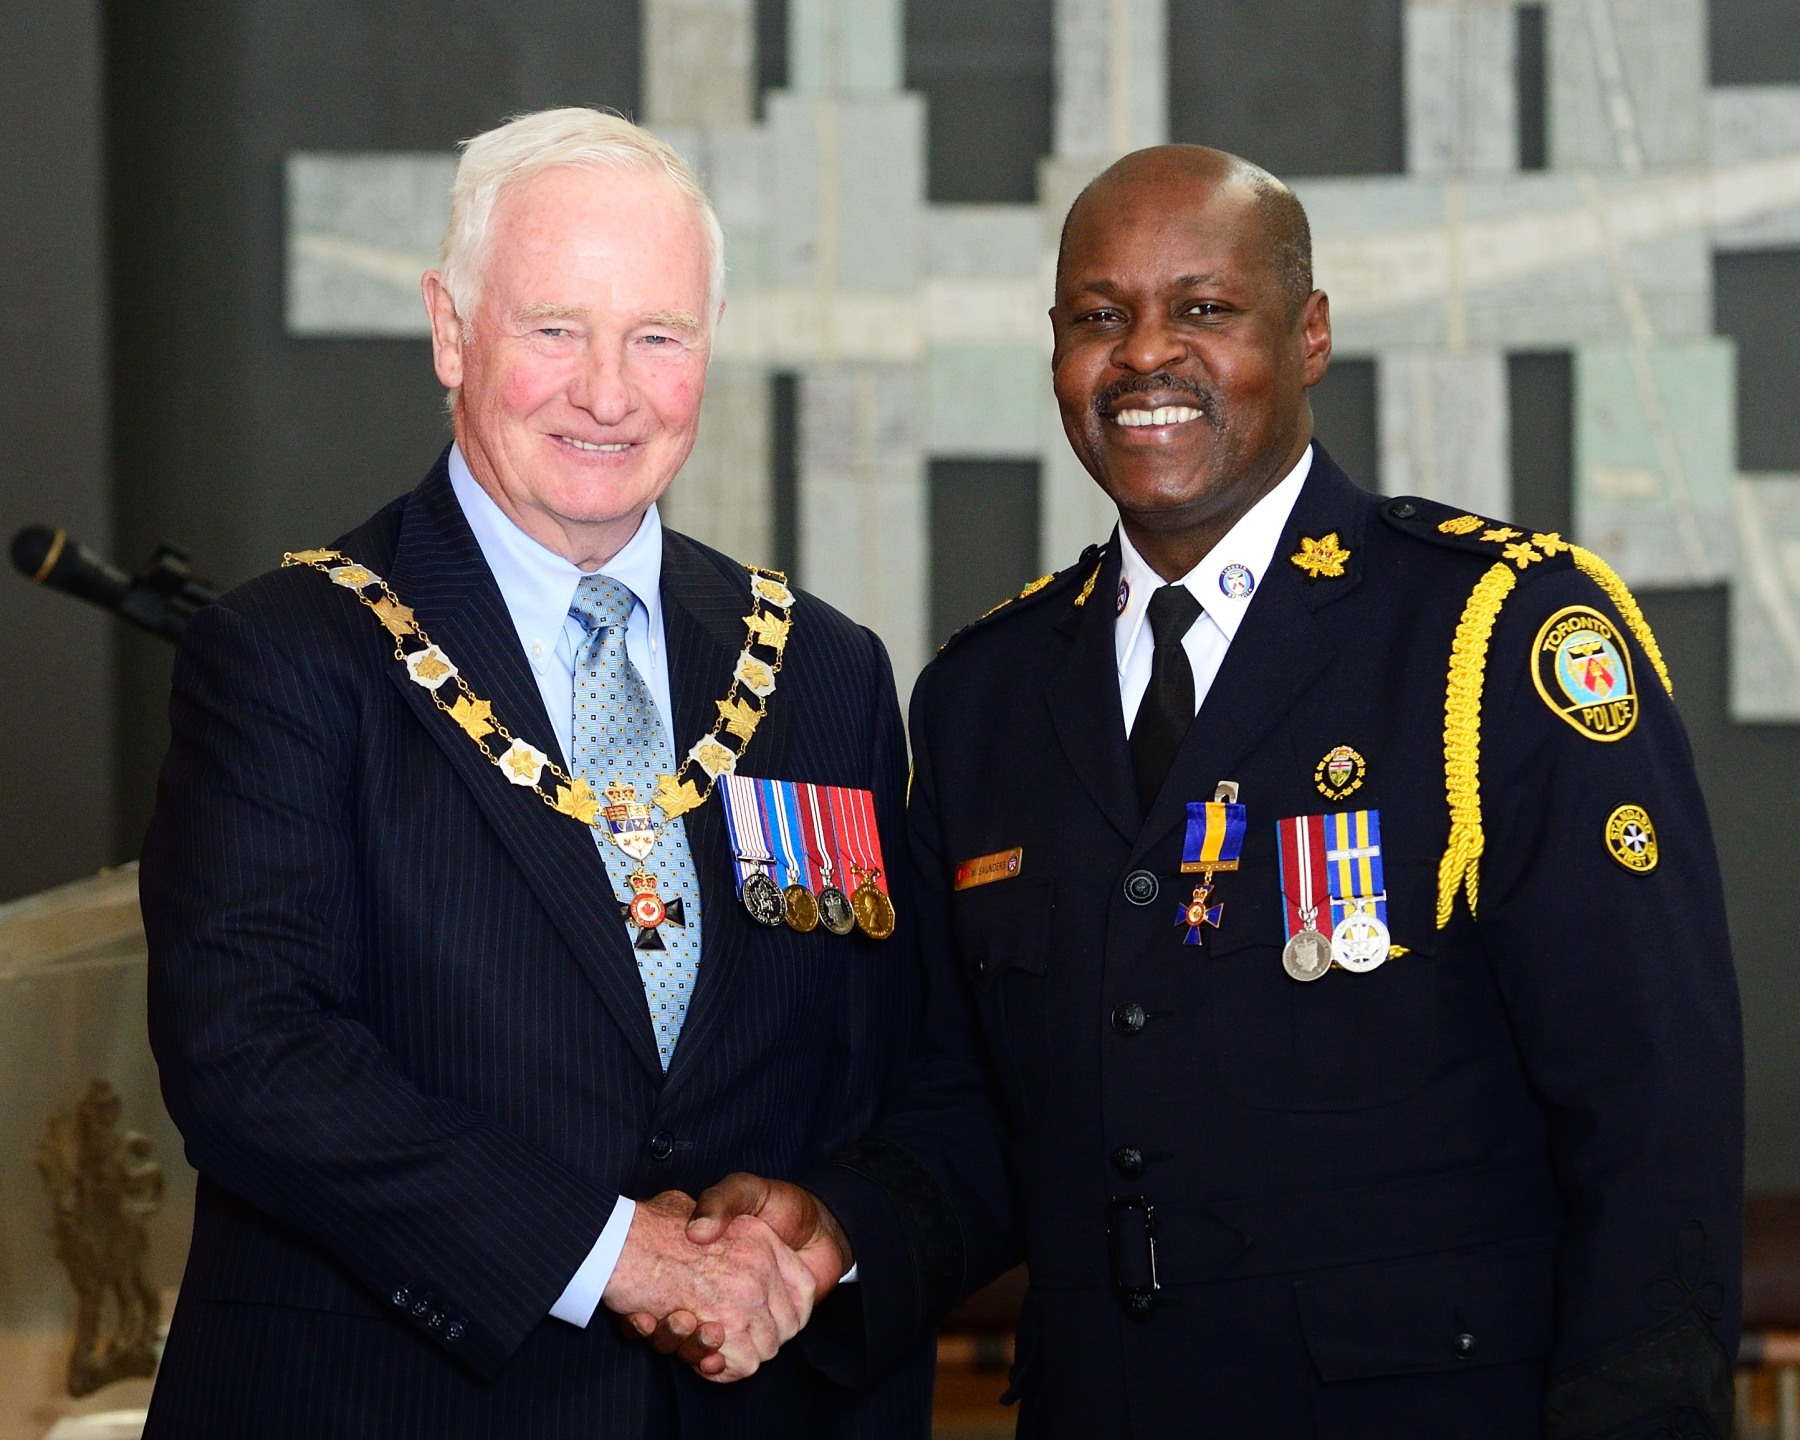 Chief Mark Saunders, O.O.M., of the Toronto Police Service was among the 31 recipients who were invested of the Order.